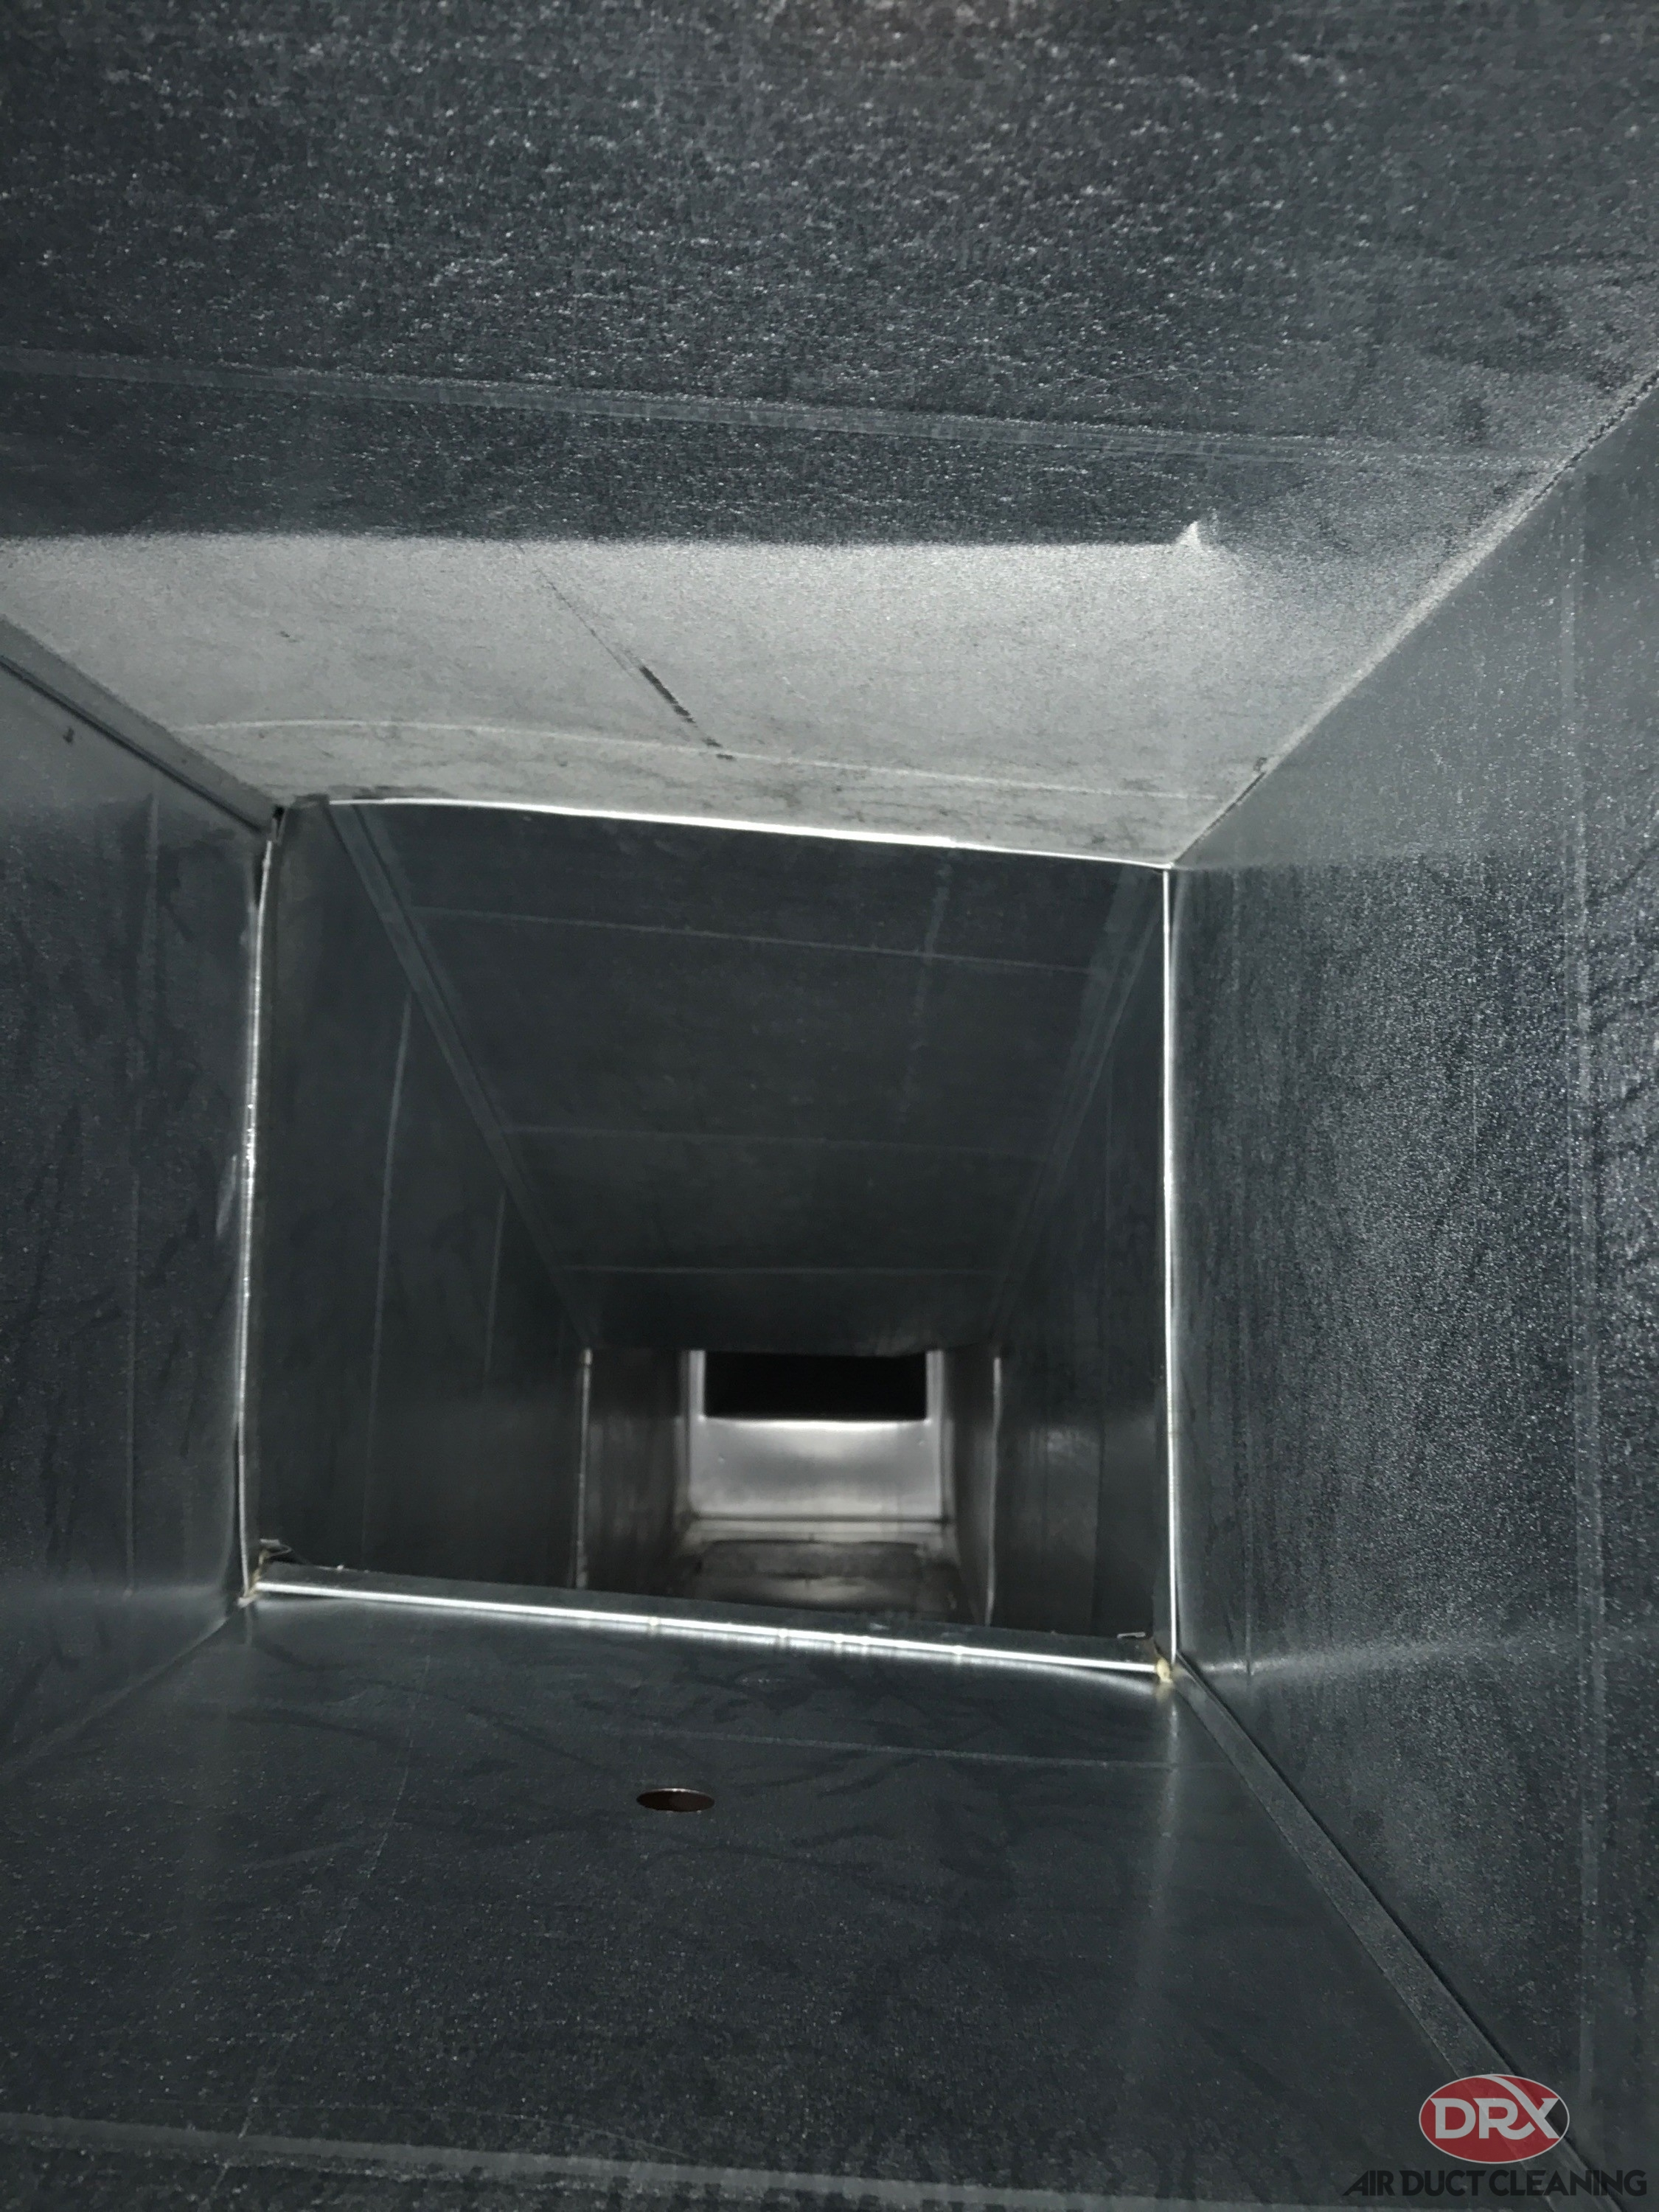 Duct cleaned by DRX ductwork professionals